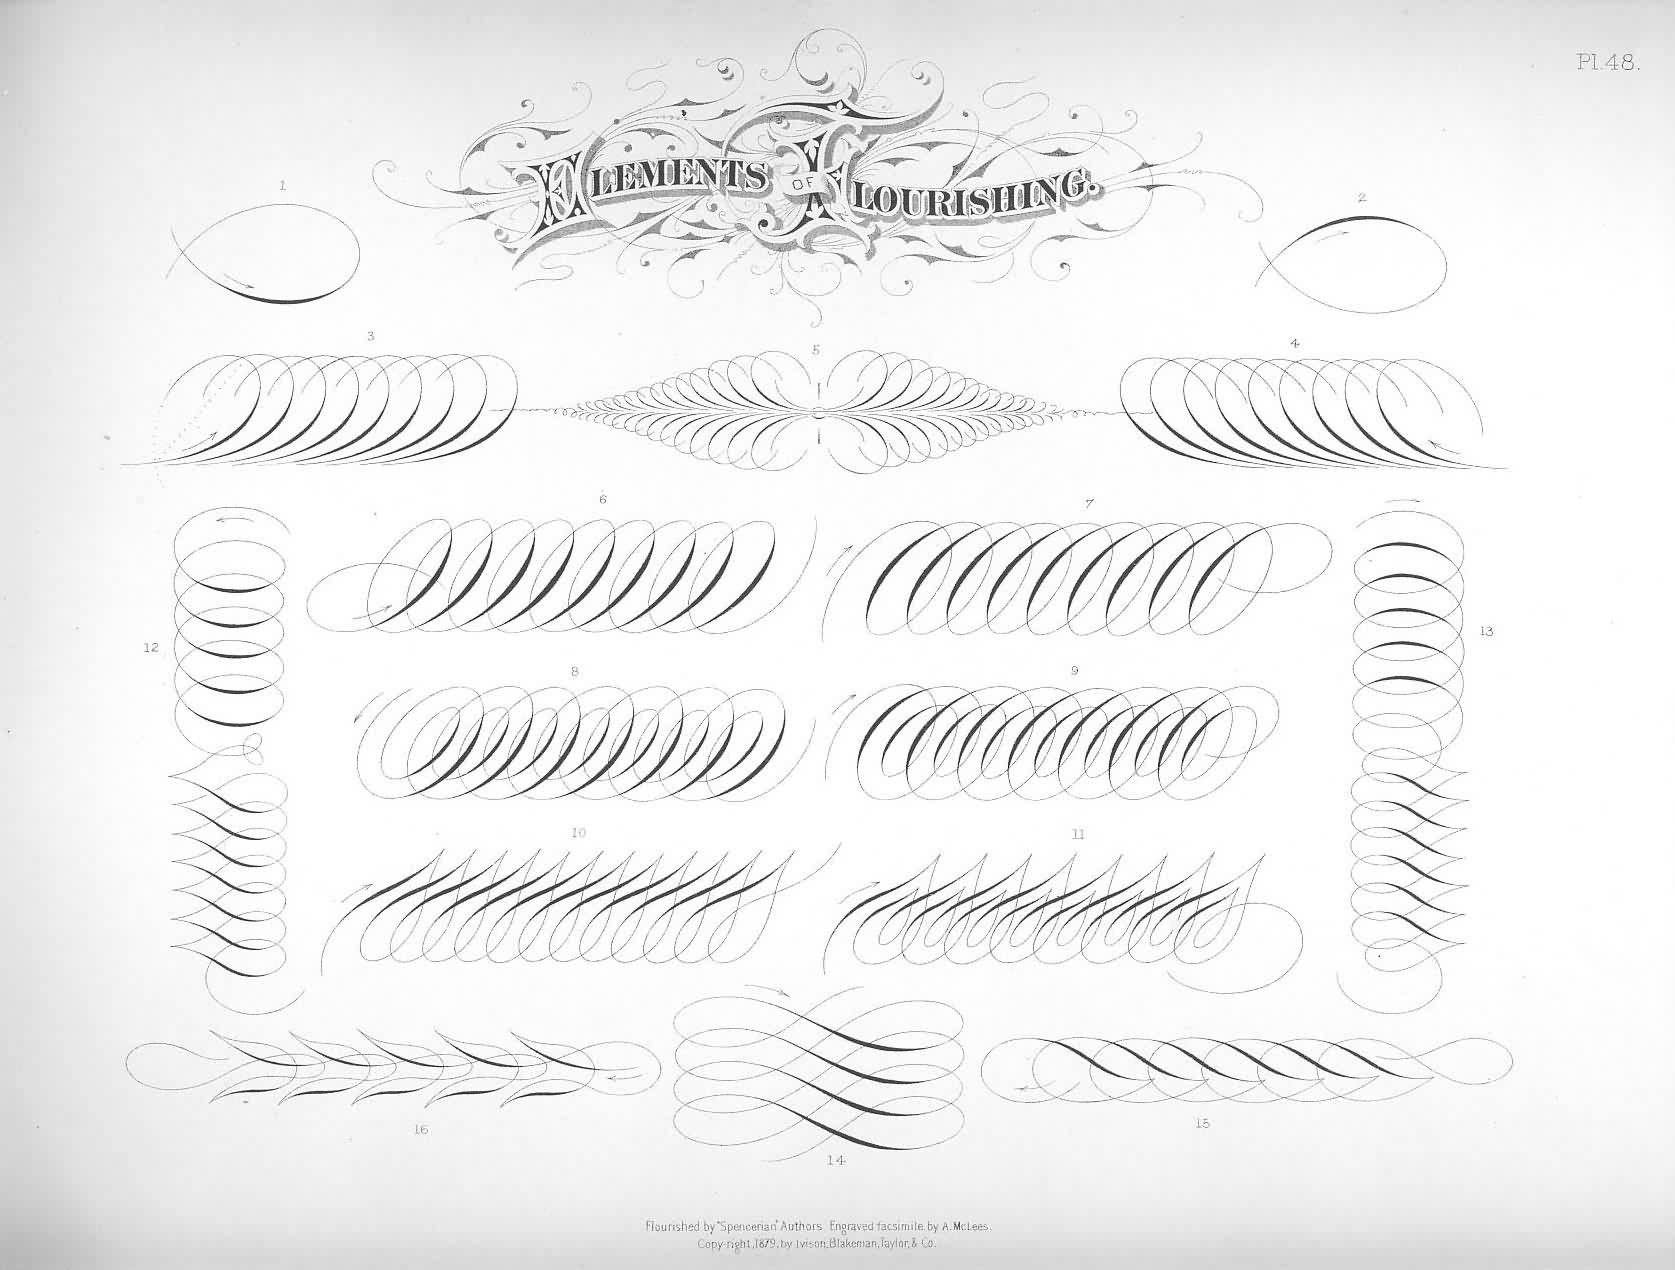 Times New Roman The New Spencerian Compendium Of